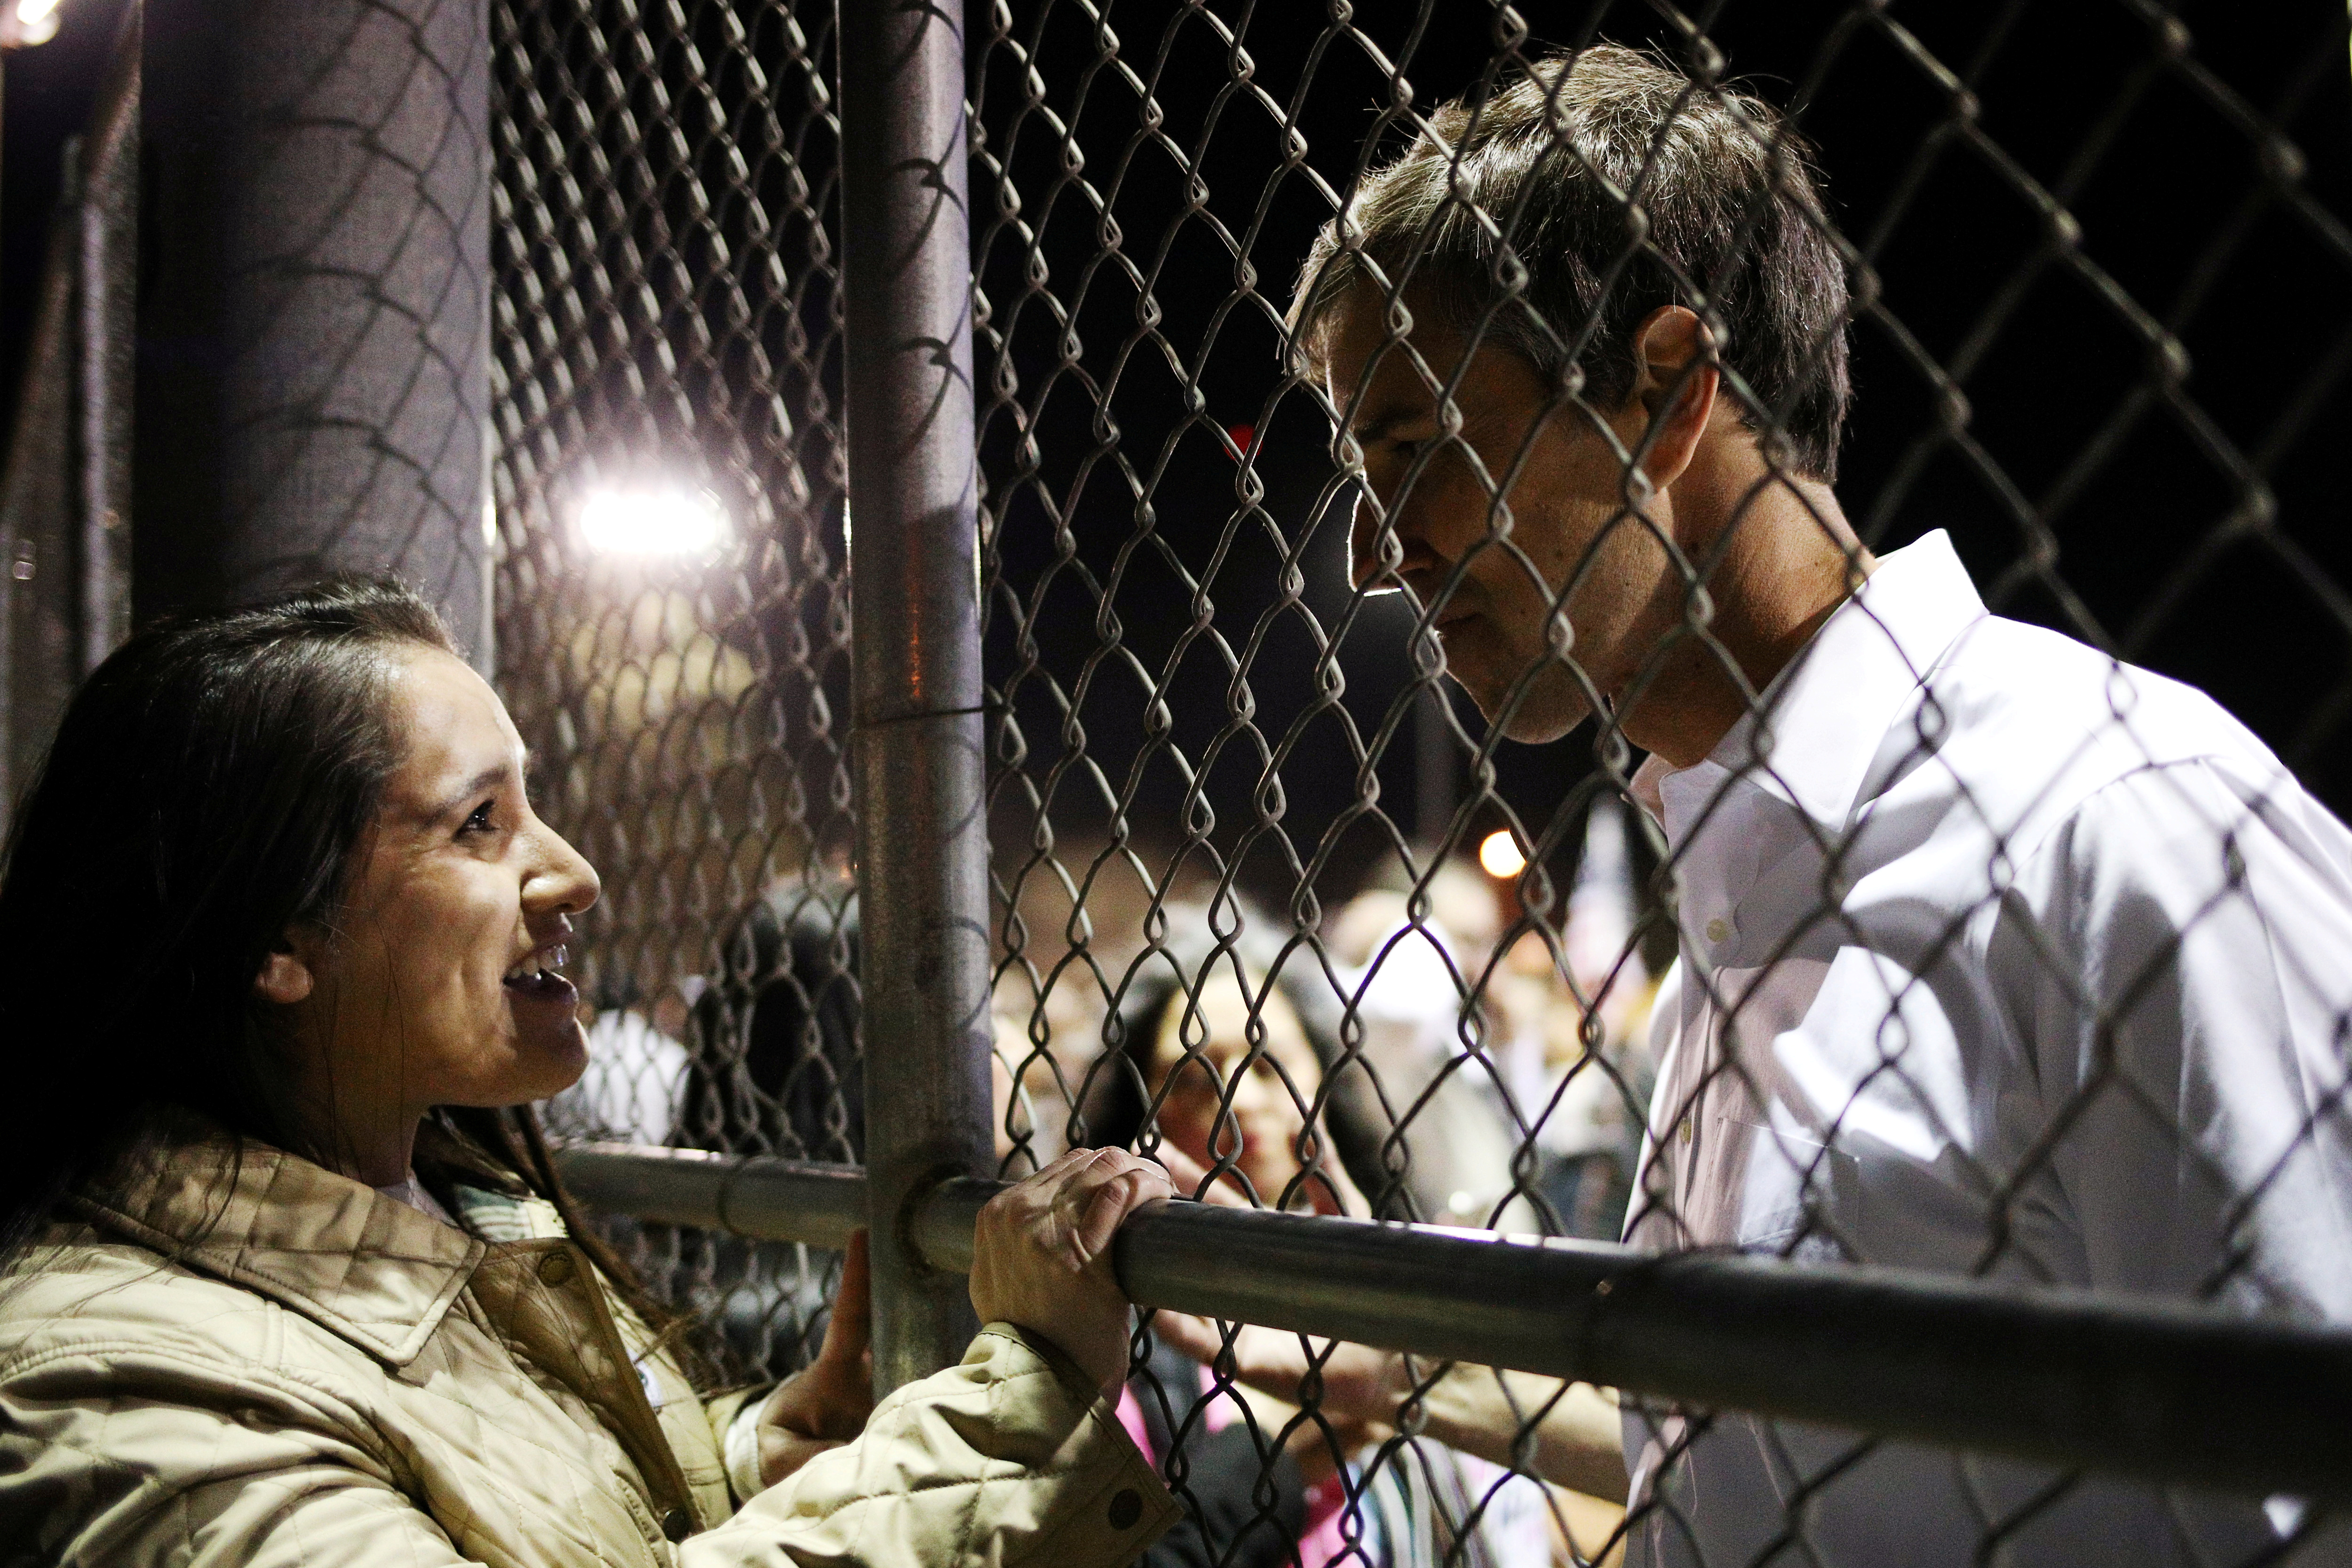 Beto O'Rourke, the Democratic former Texas congressman, greets supporters following an anti-Trump march in El Paso, Texas, U.S., February 11, 2019.